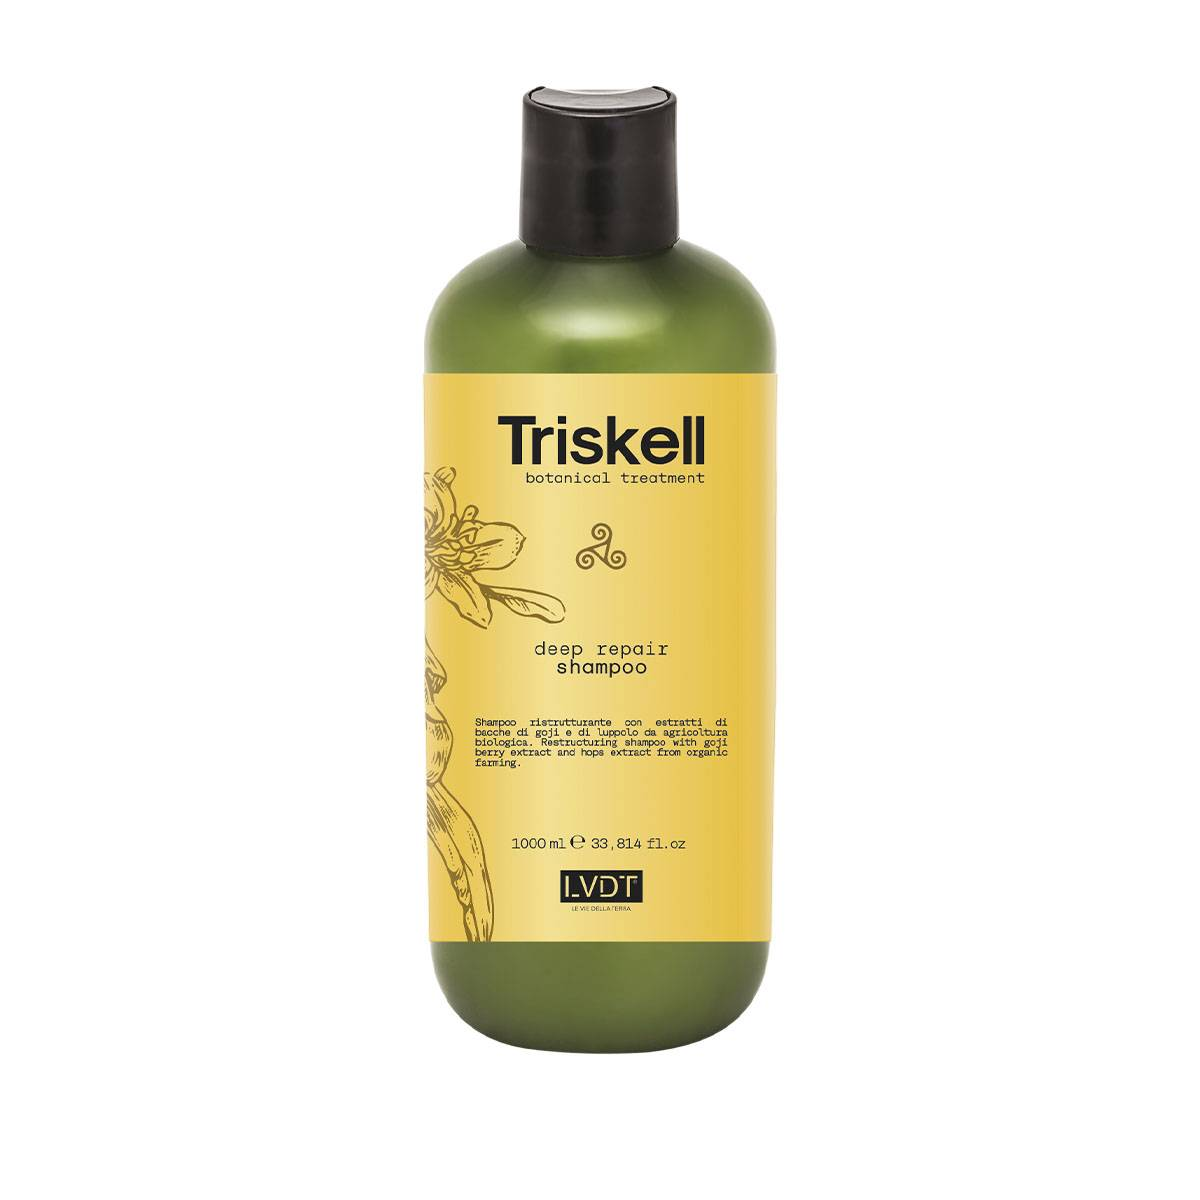 Deep Repair Shampoo 1000ml Triskell Nuova Botanical Treatment